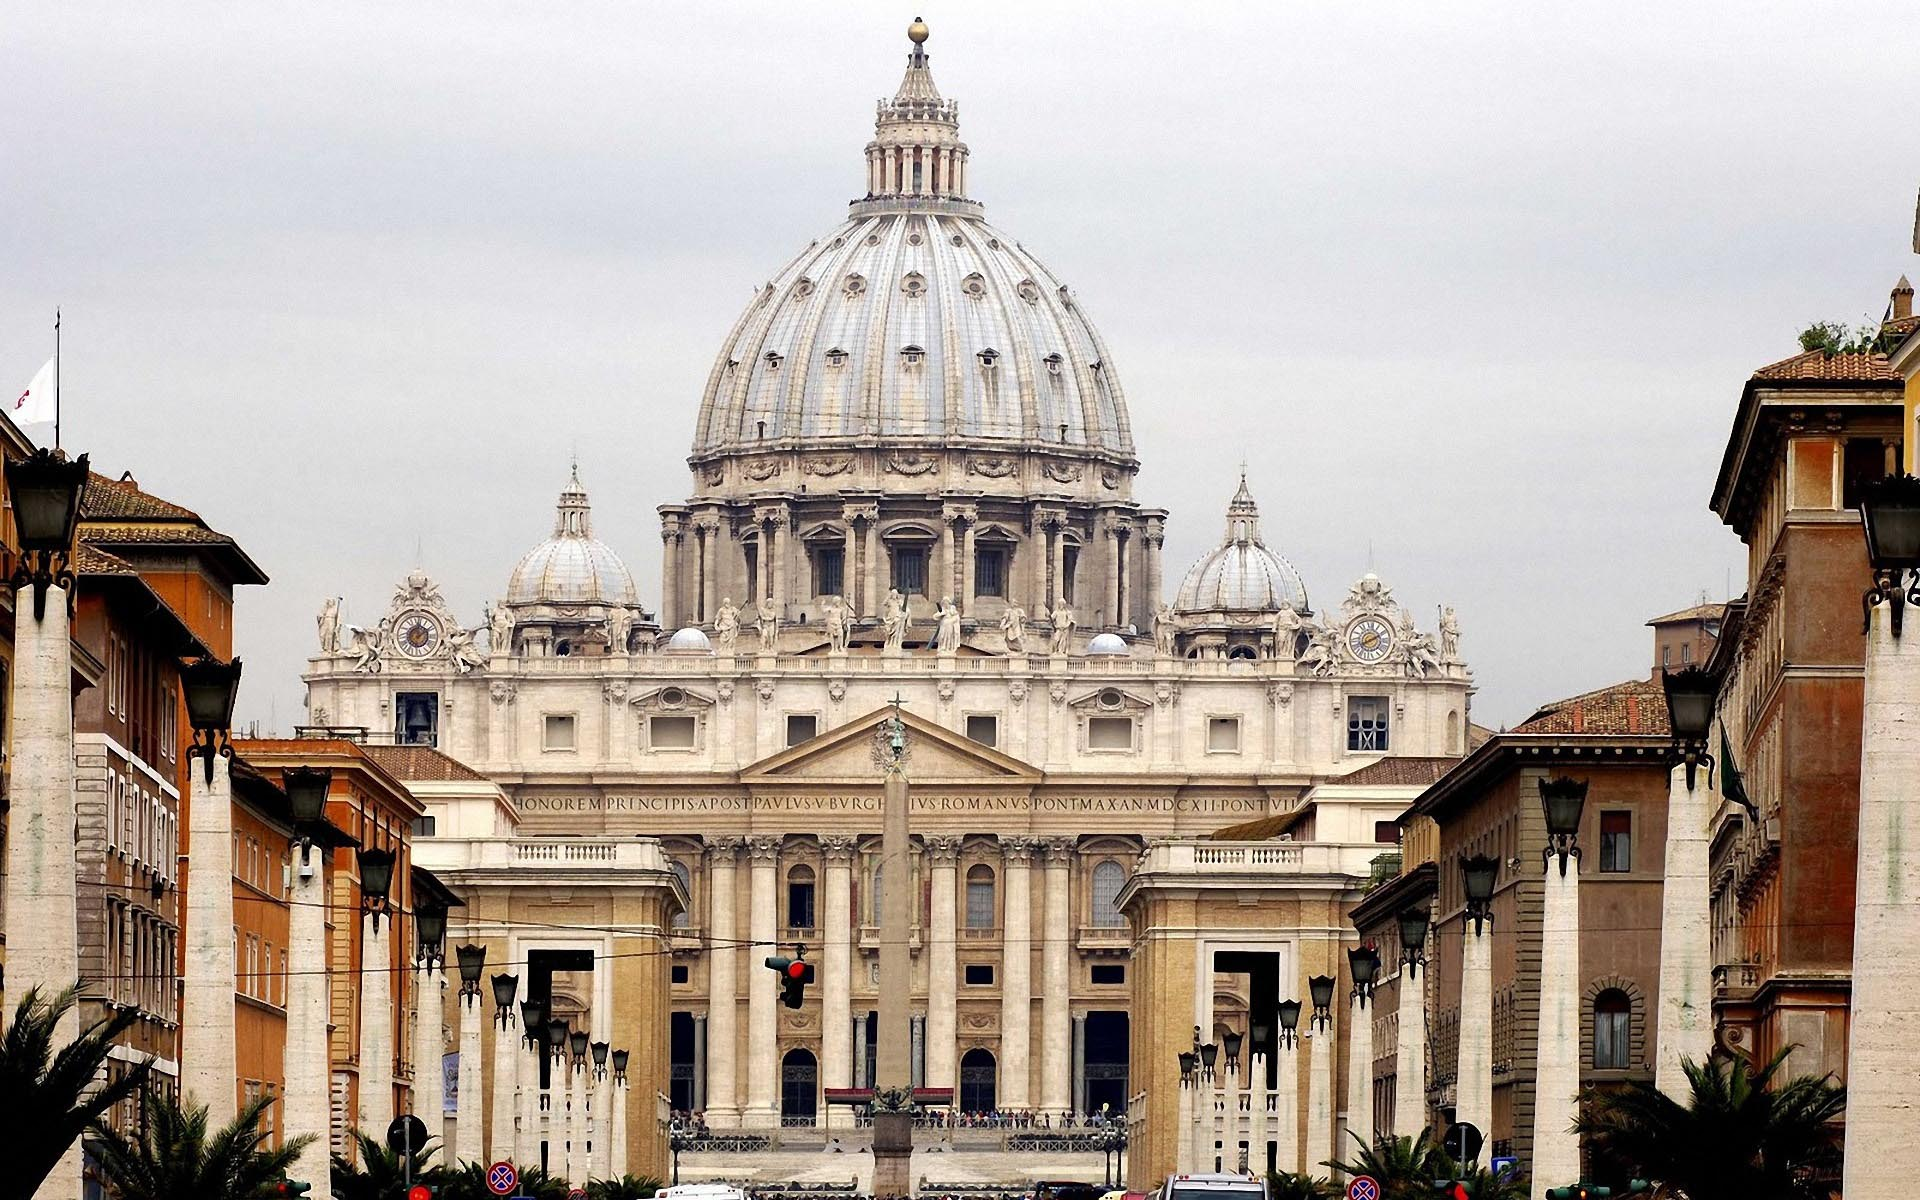 Global Faith Leaders Meet at Vatican to Discuss Marriage